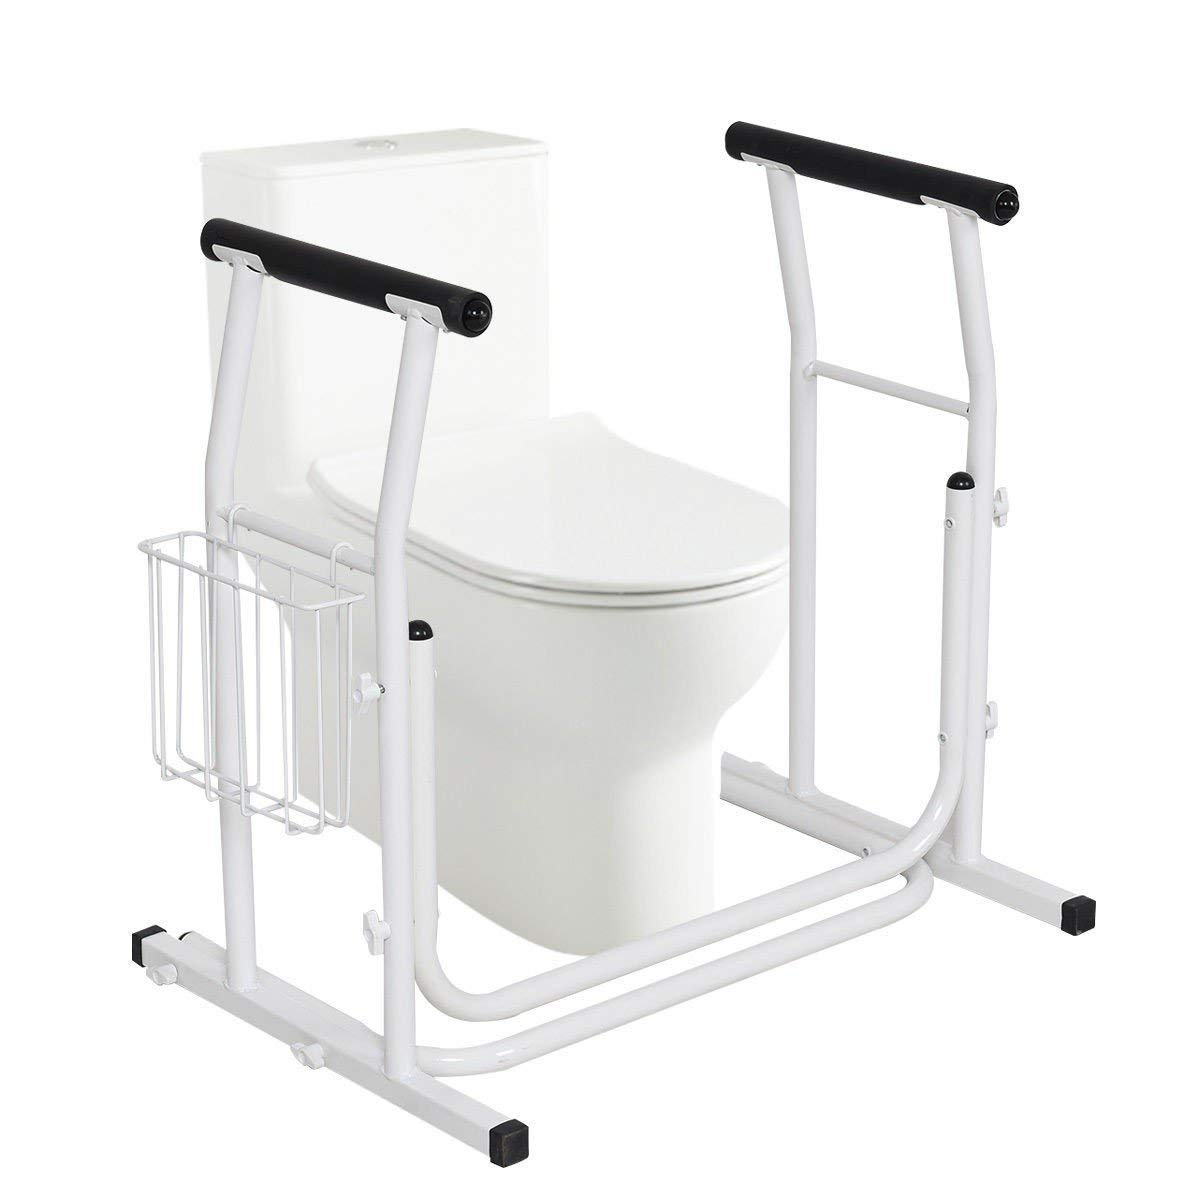 COSTWAY Medical Bathroom Toilet Rail Grab Bar and Commode Safety Frame Handle for Elderly, Senior, Handicap & Disabled - Padded Handrails, White by COSTWAY